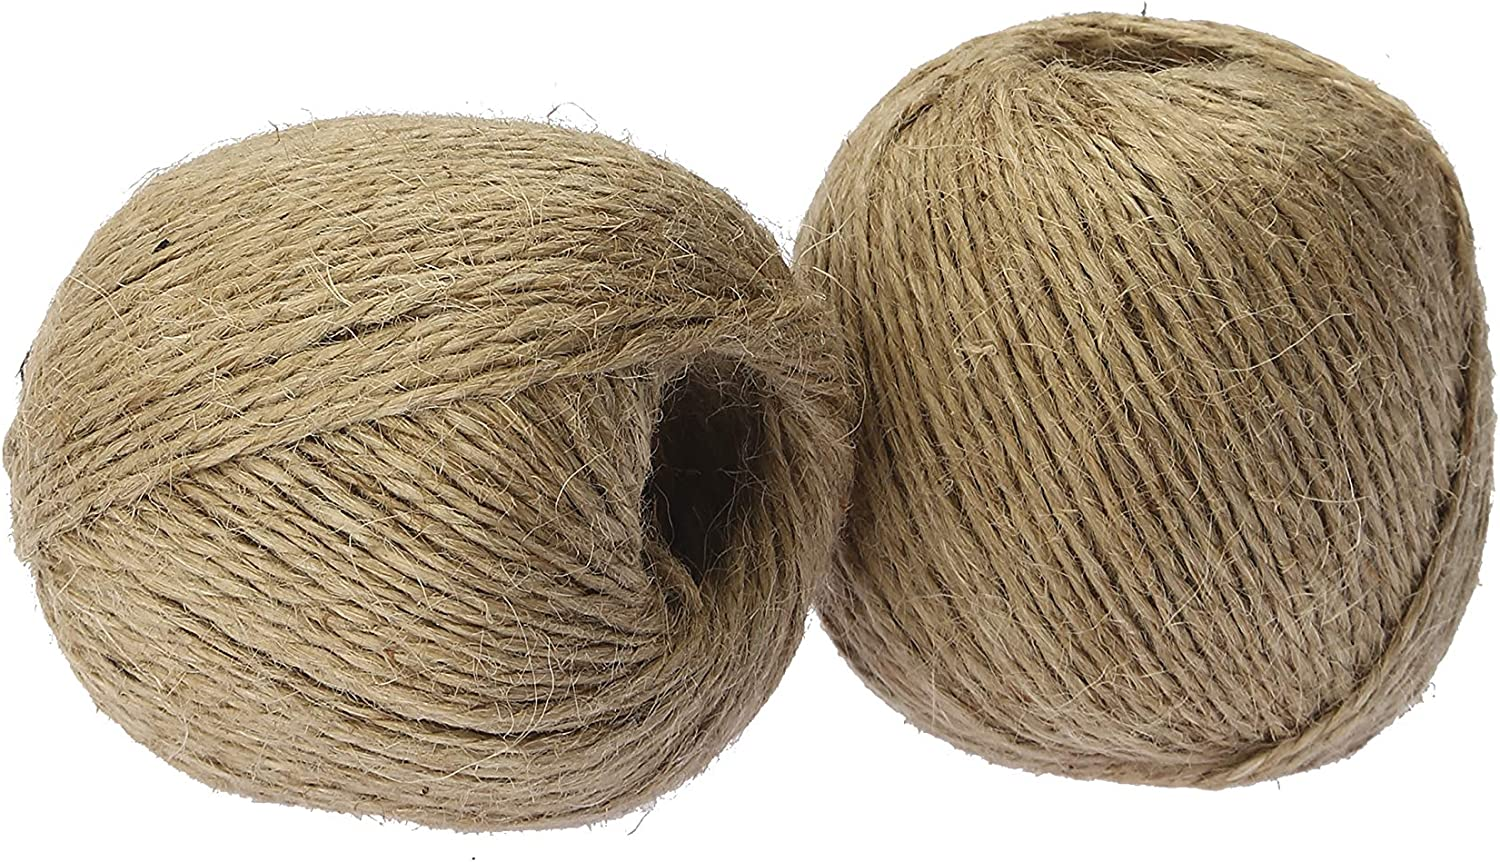 Twisted Jute Twine 16//2 100GR Biodegradable